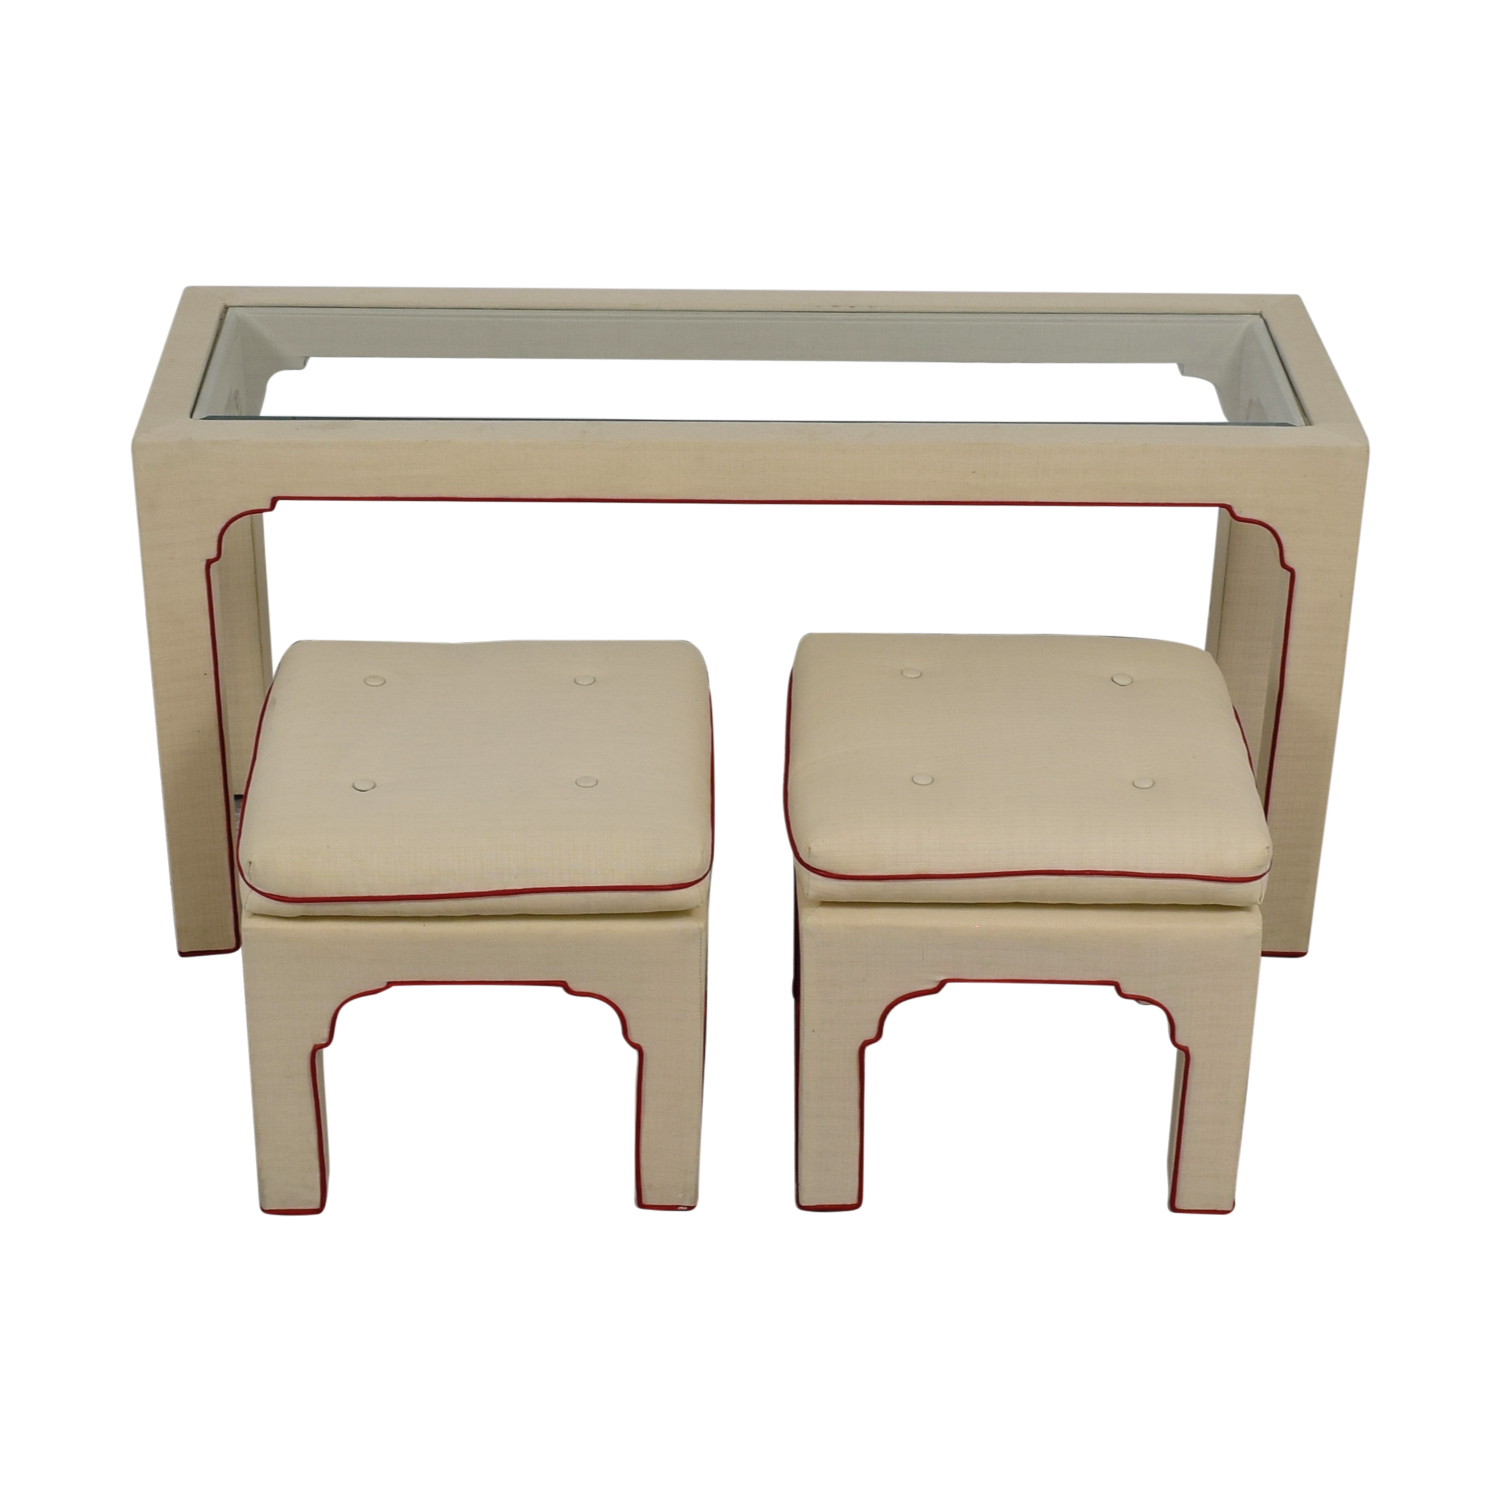 Cream and Red Sofa Table and Stools for sale